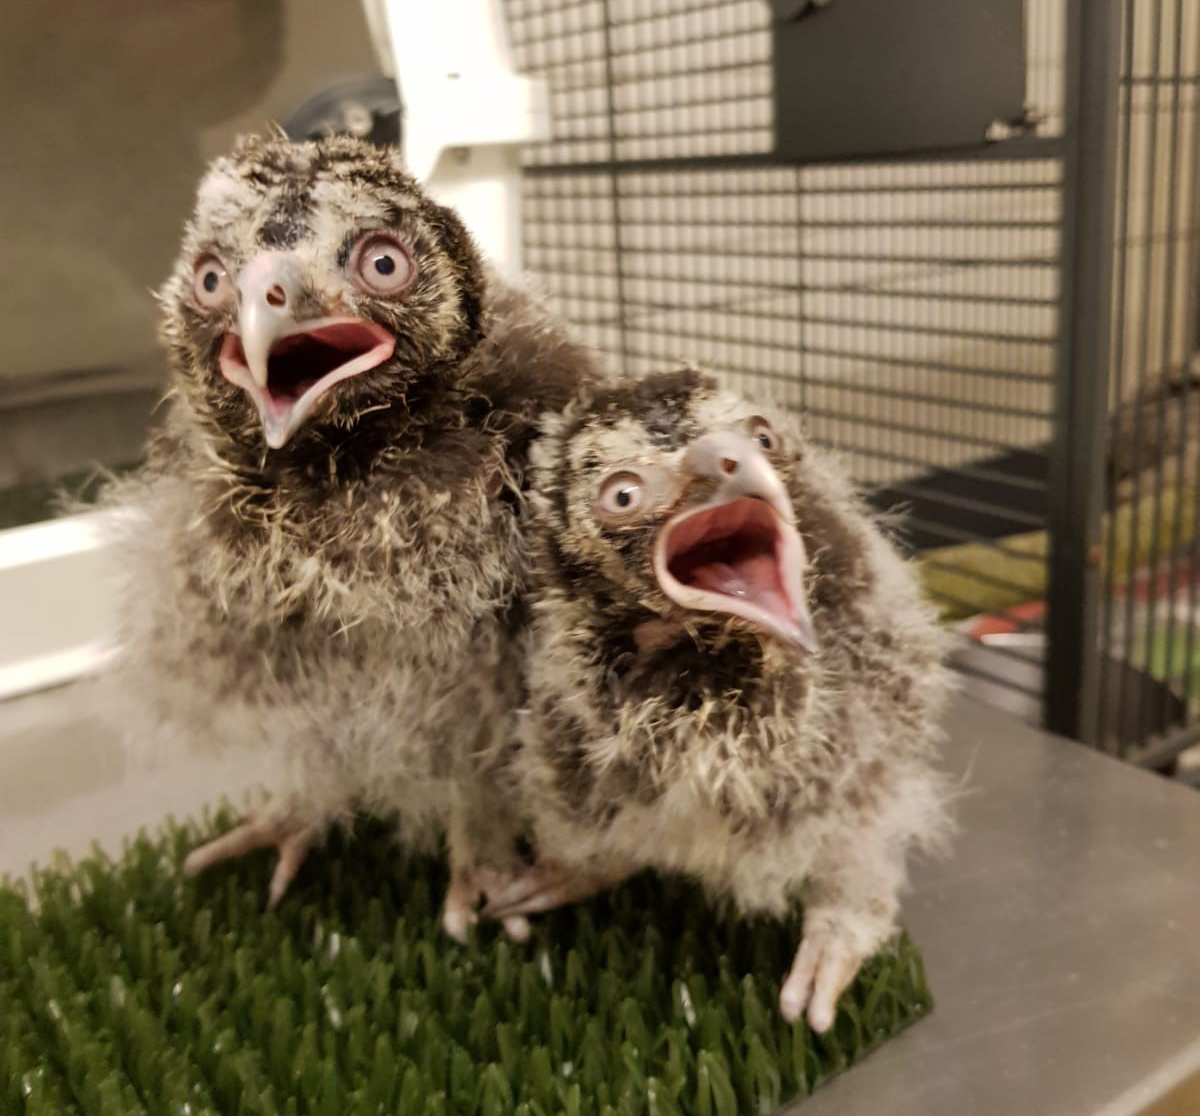 Two hand-reared Great Grey Owl chicks